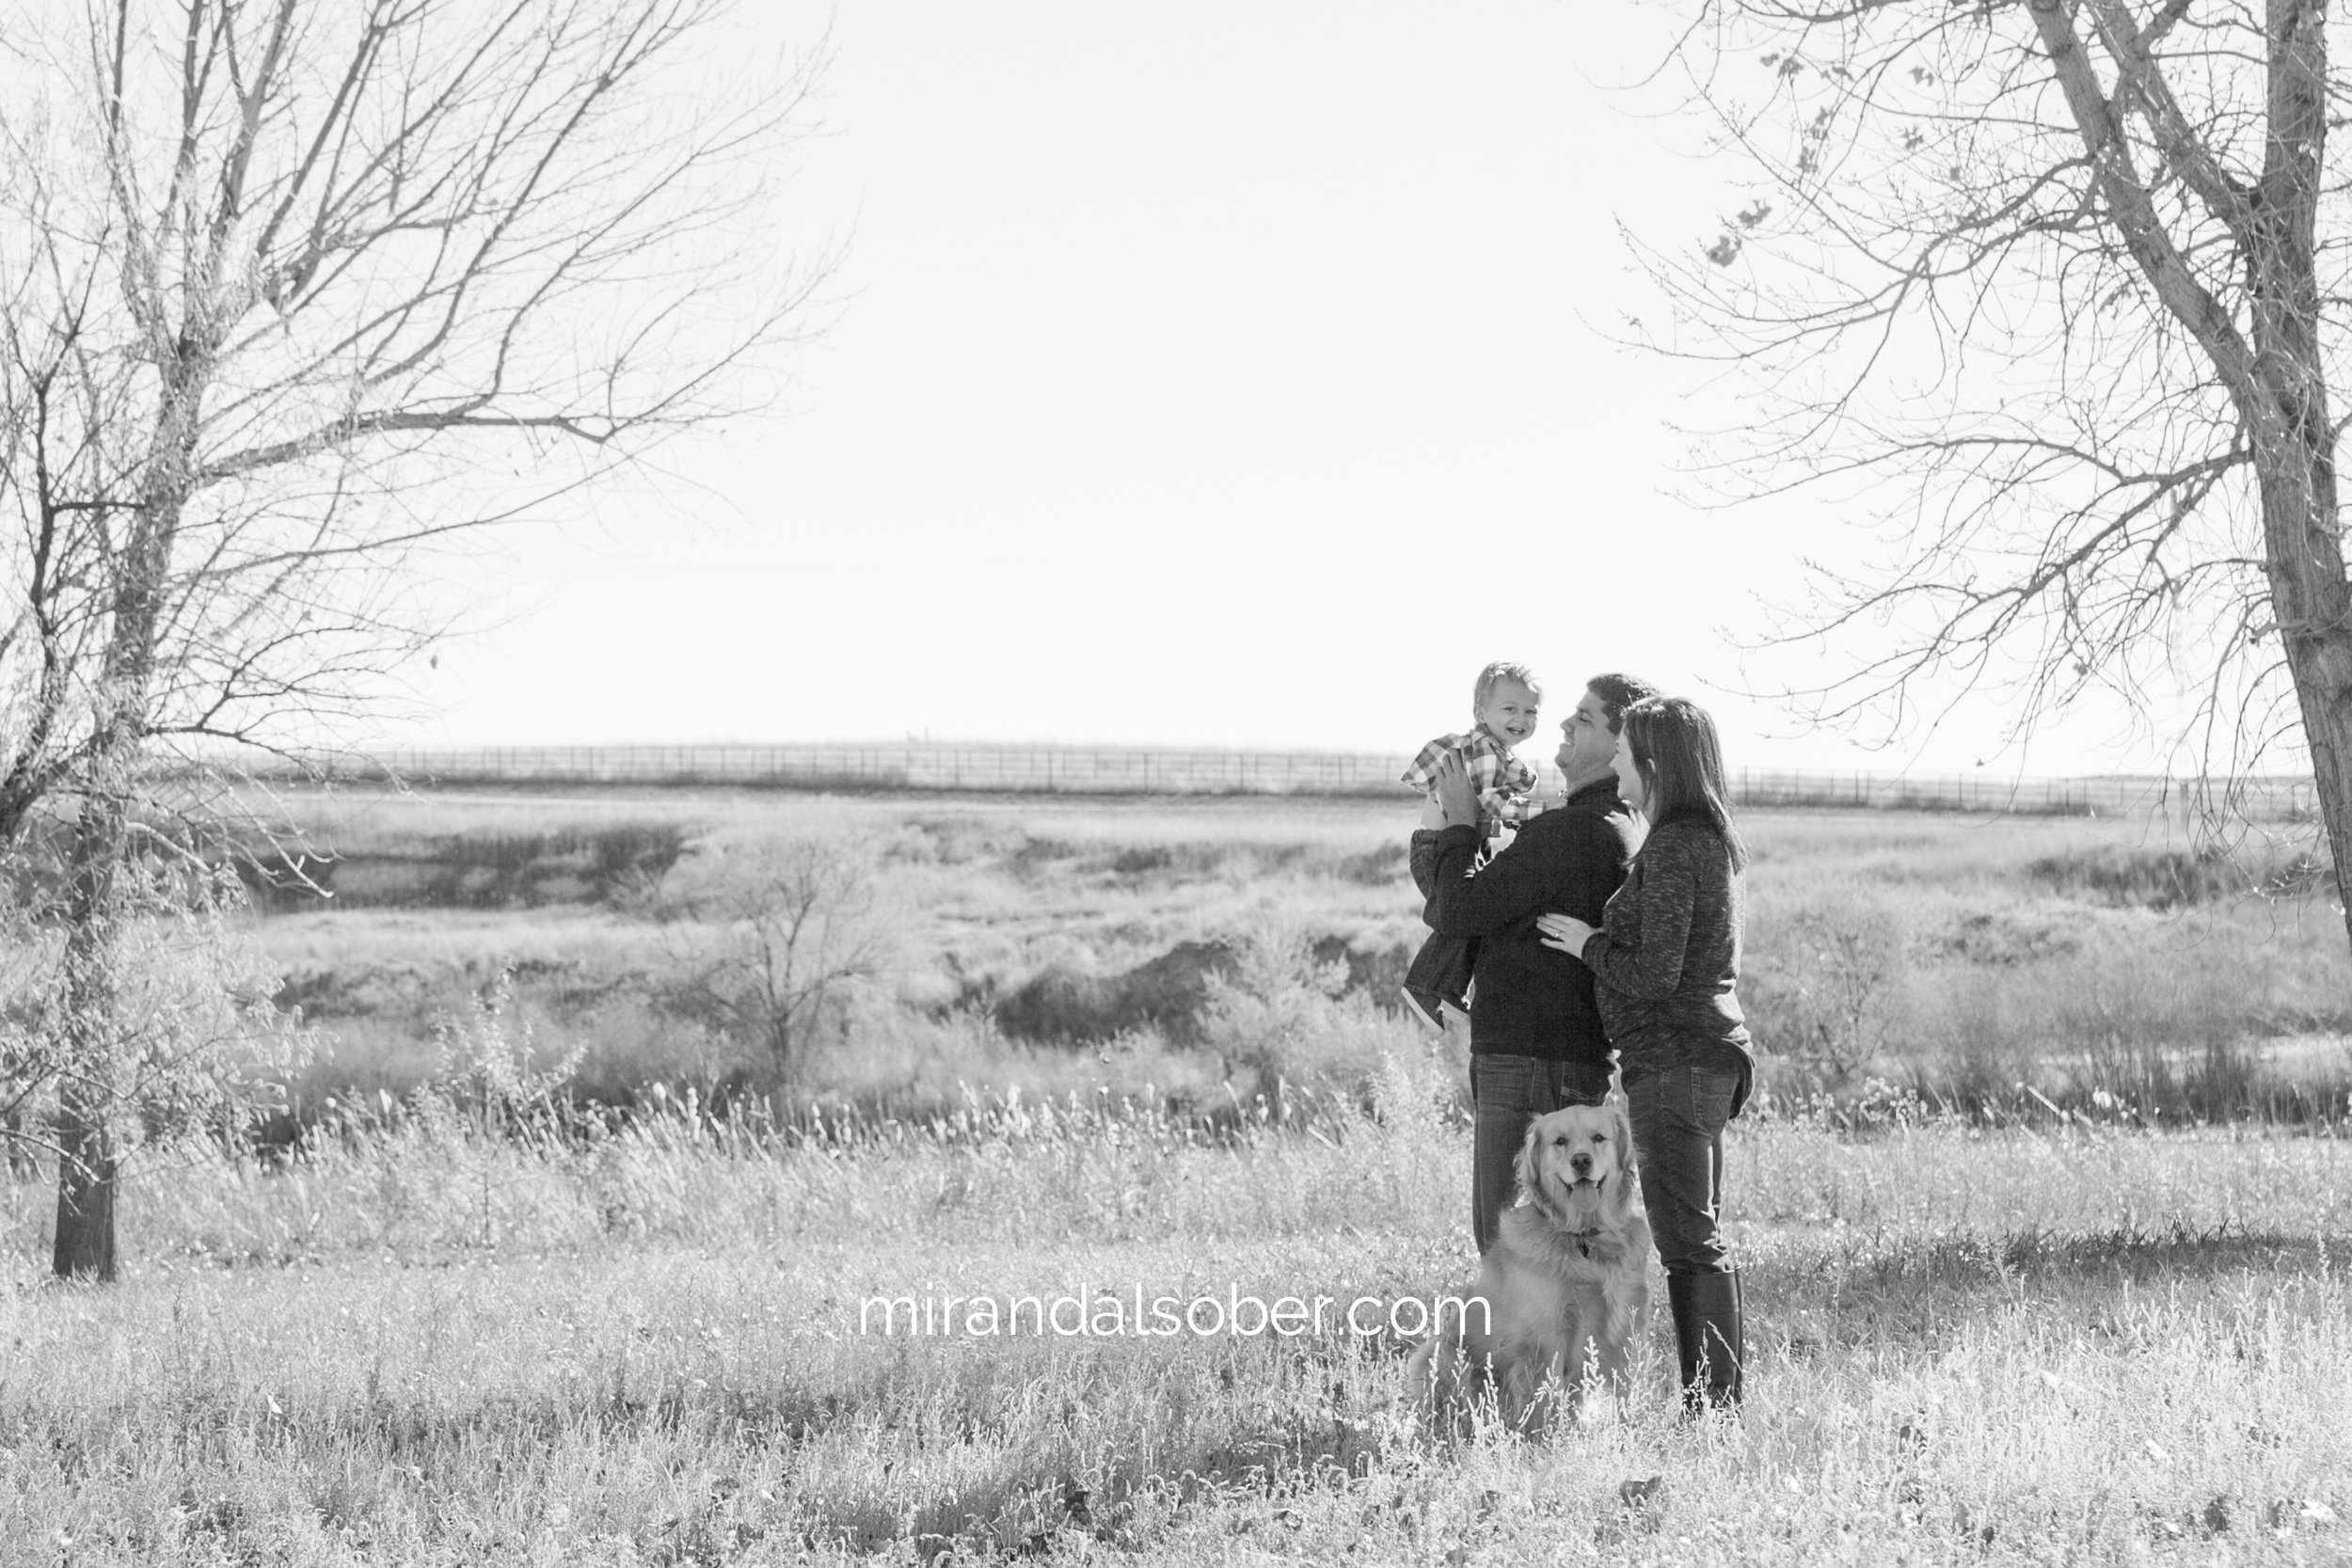 Northern Colorado family photographer, Miranda L. Sober Photography